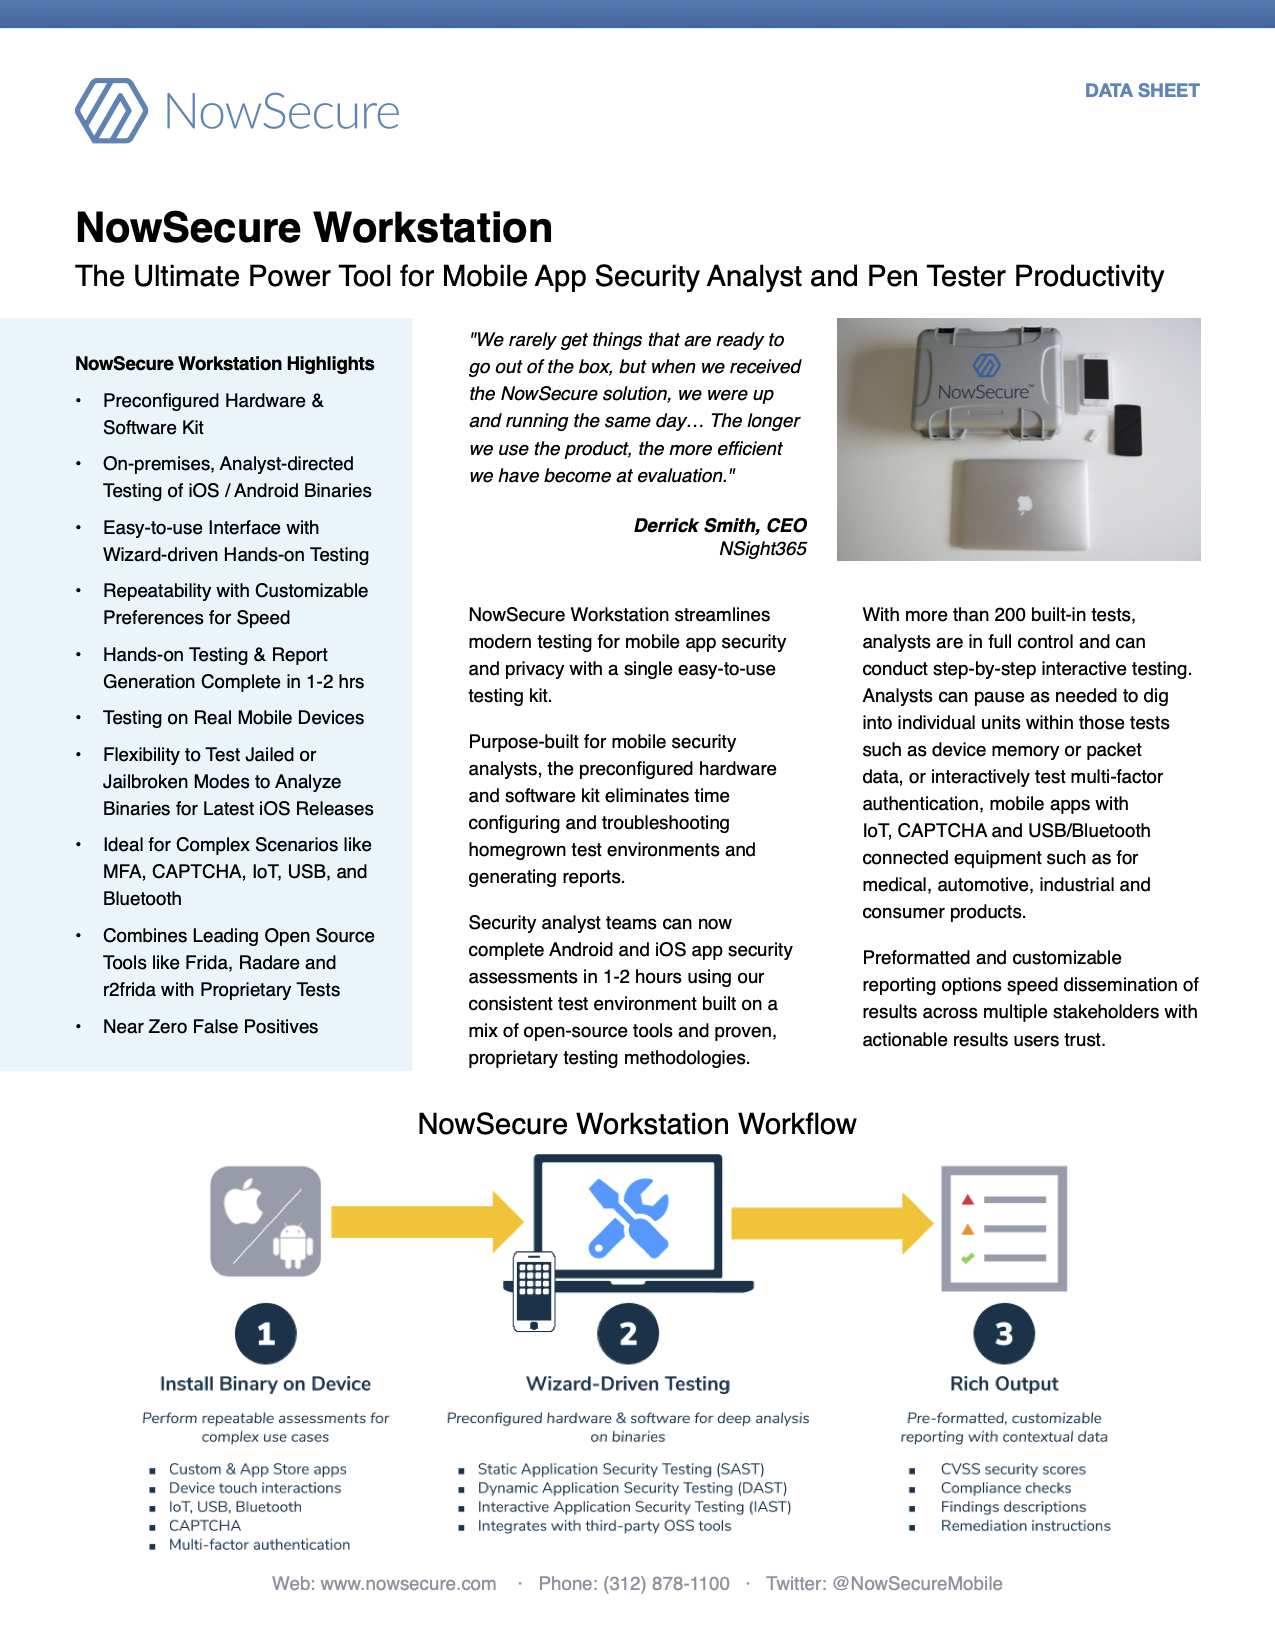 Power Tools For Security Analysts Nowsecure